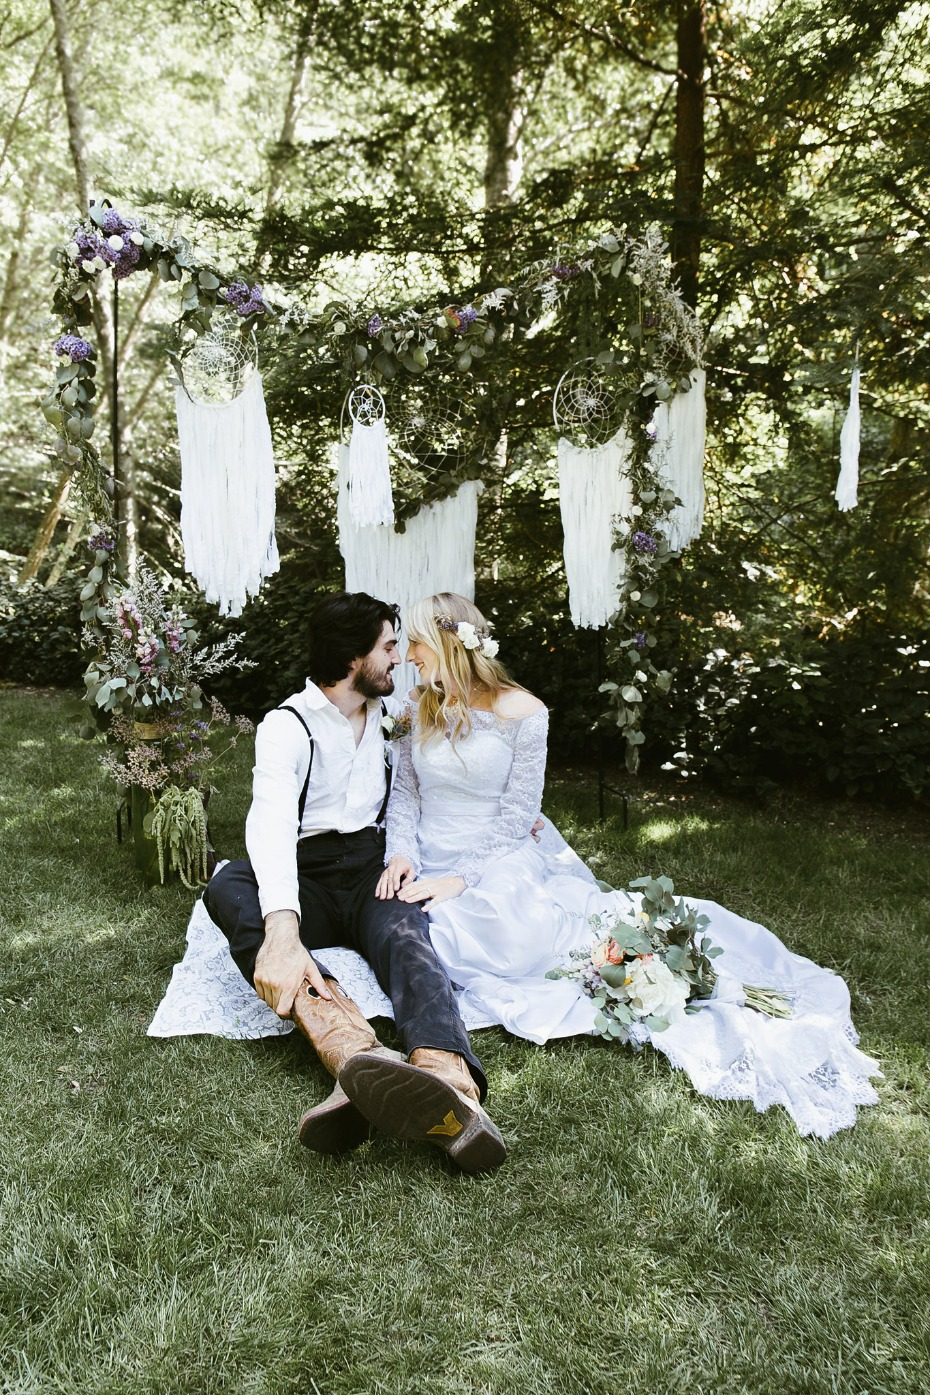 Boho ceremony idea with dreamcatchers